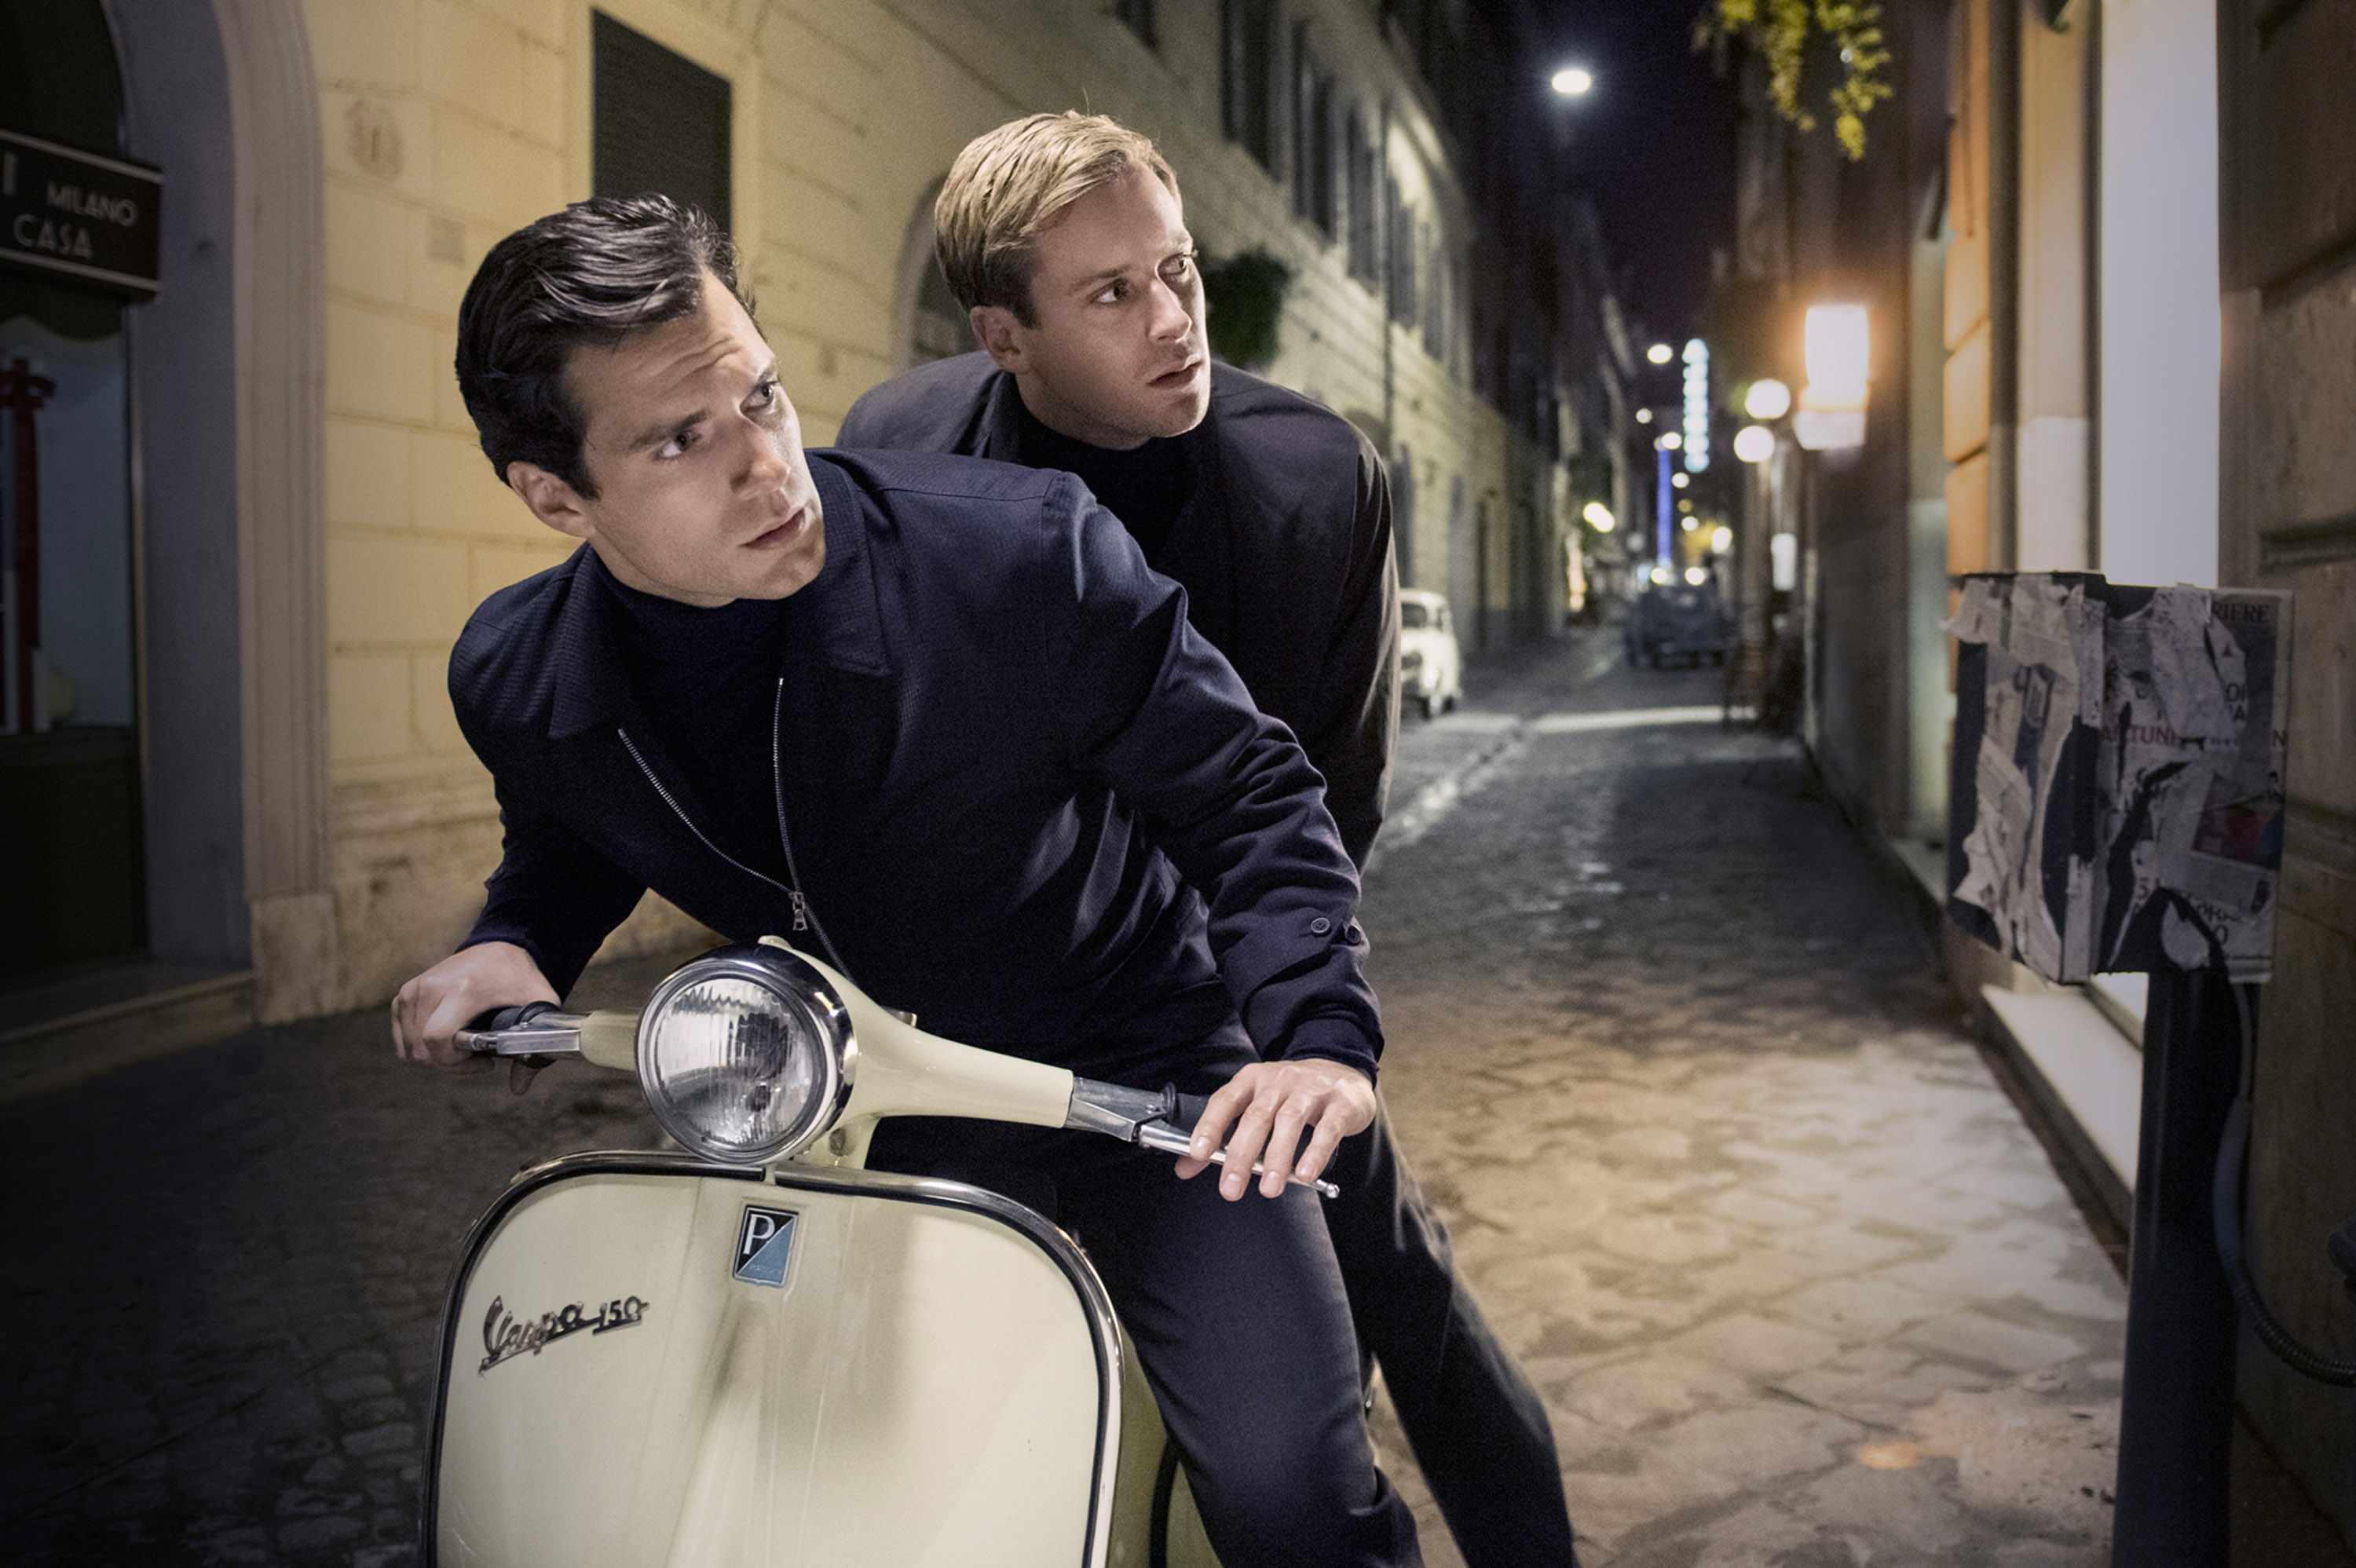 Cavill (left) and Hammer embody the stripped-down '60s chic Ritchie sought in The Man From U.N.C.L.E.